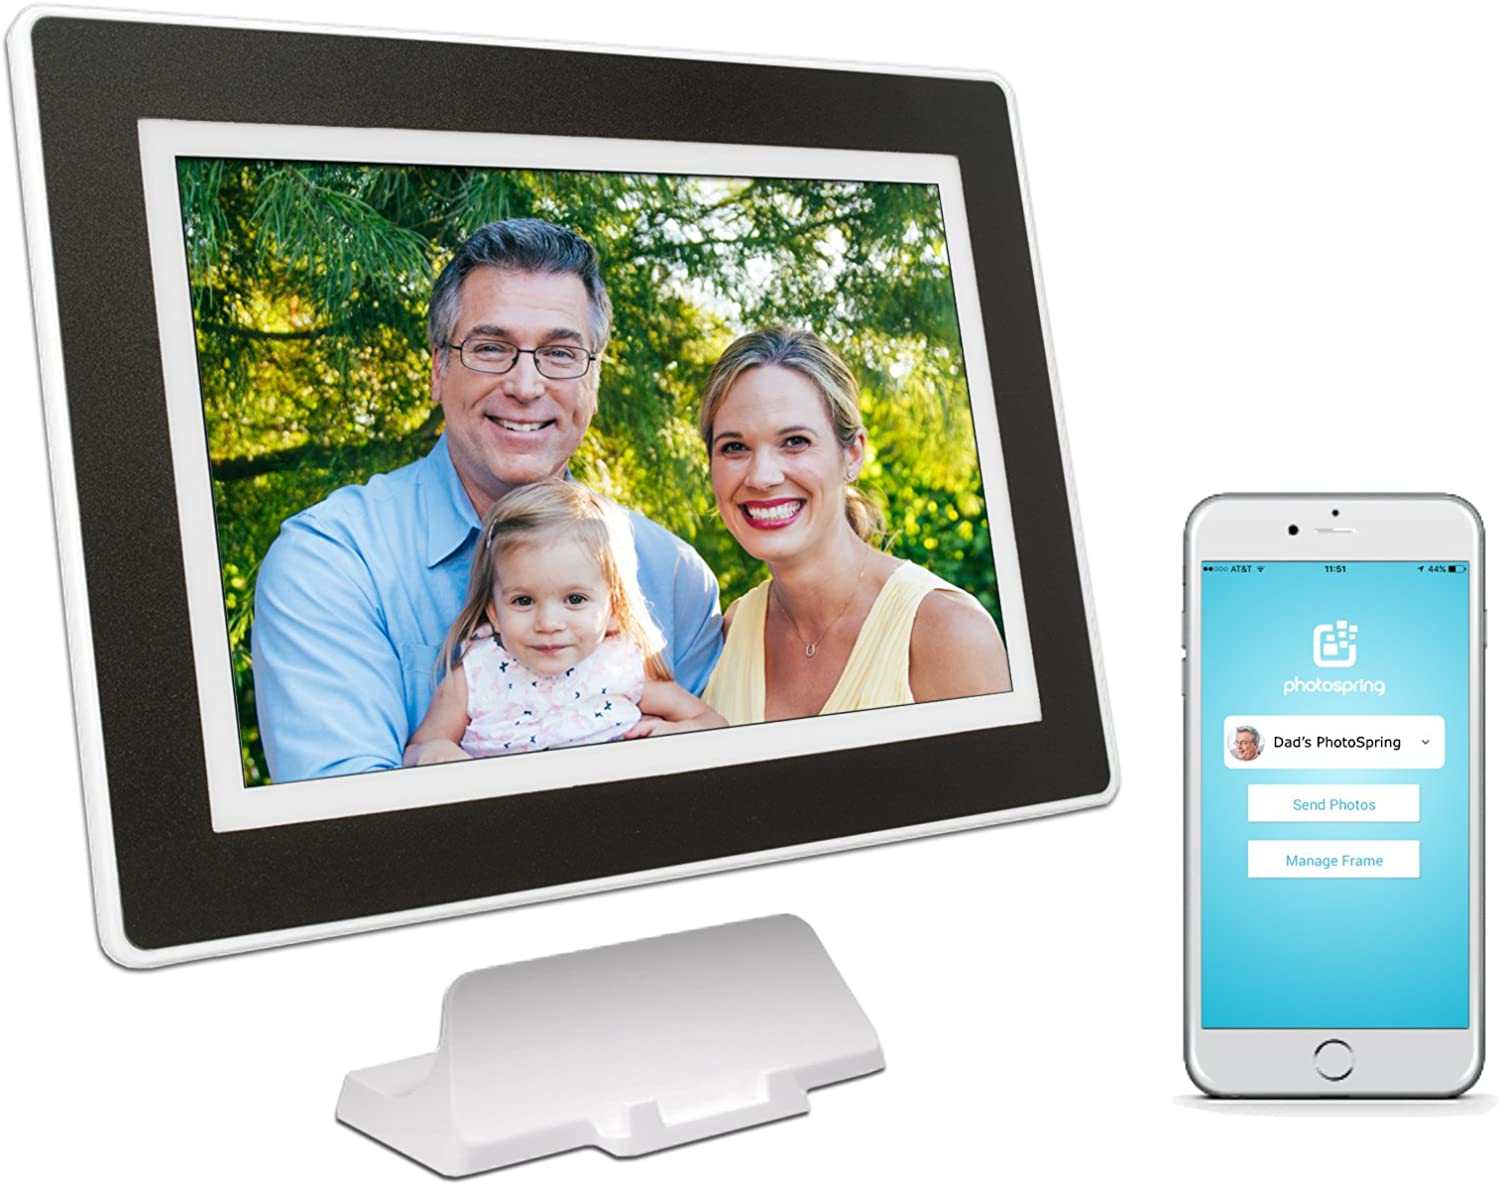 PhotoSpring (16GB) 10 inch WiFi Cloud Digital Picture Frame